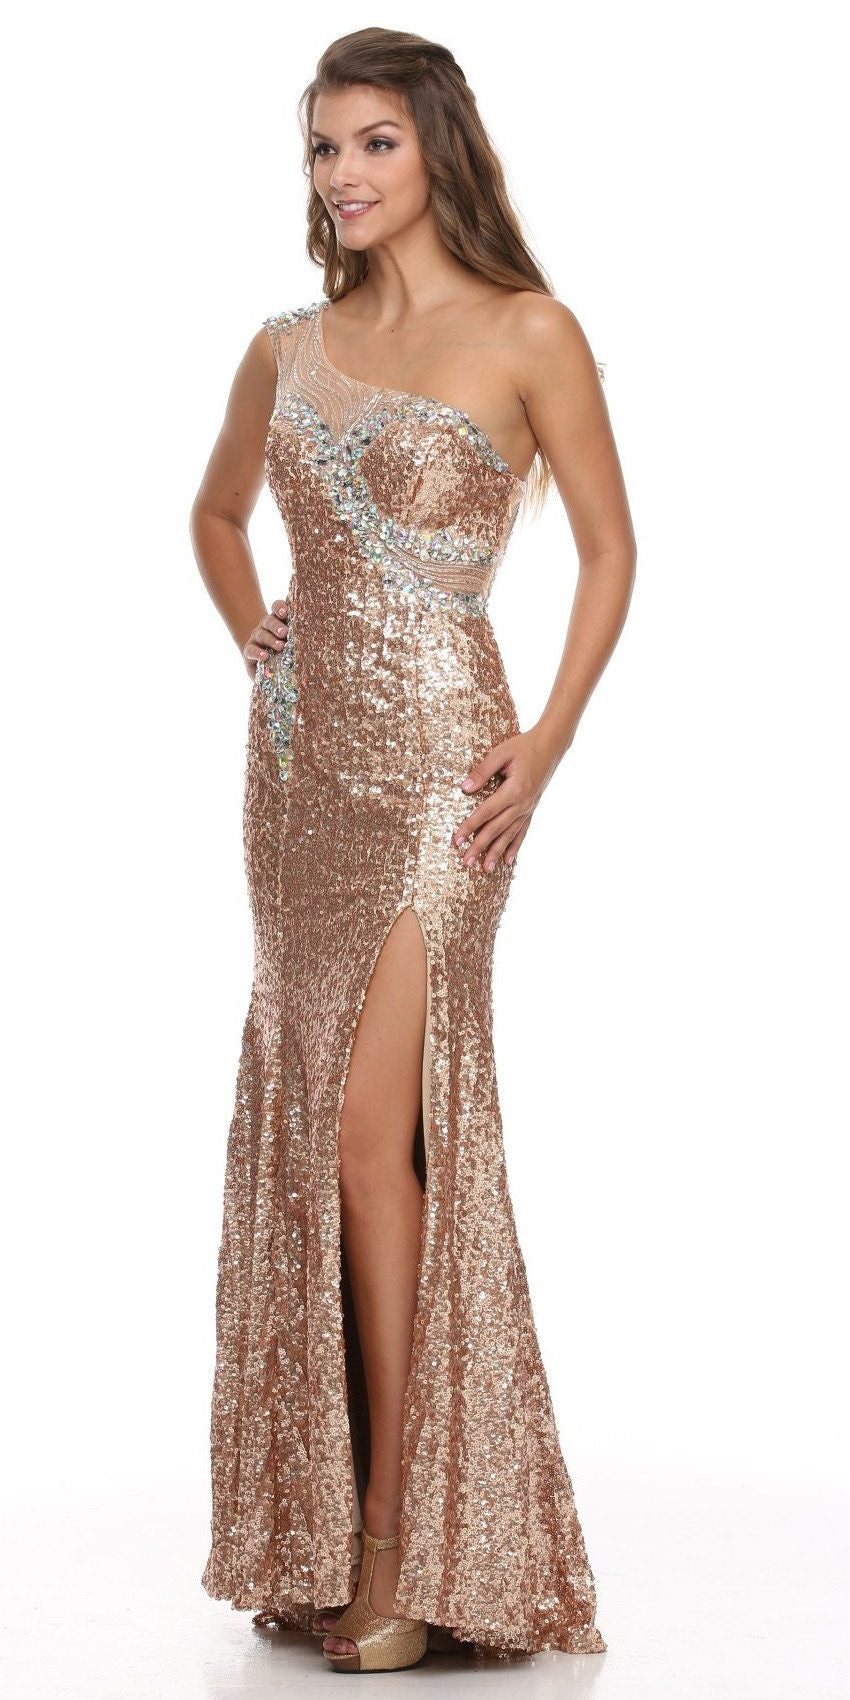 Sheer One Shoulder Long Champagne Red Carpet Mermaid Gown